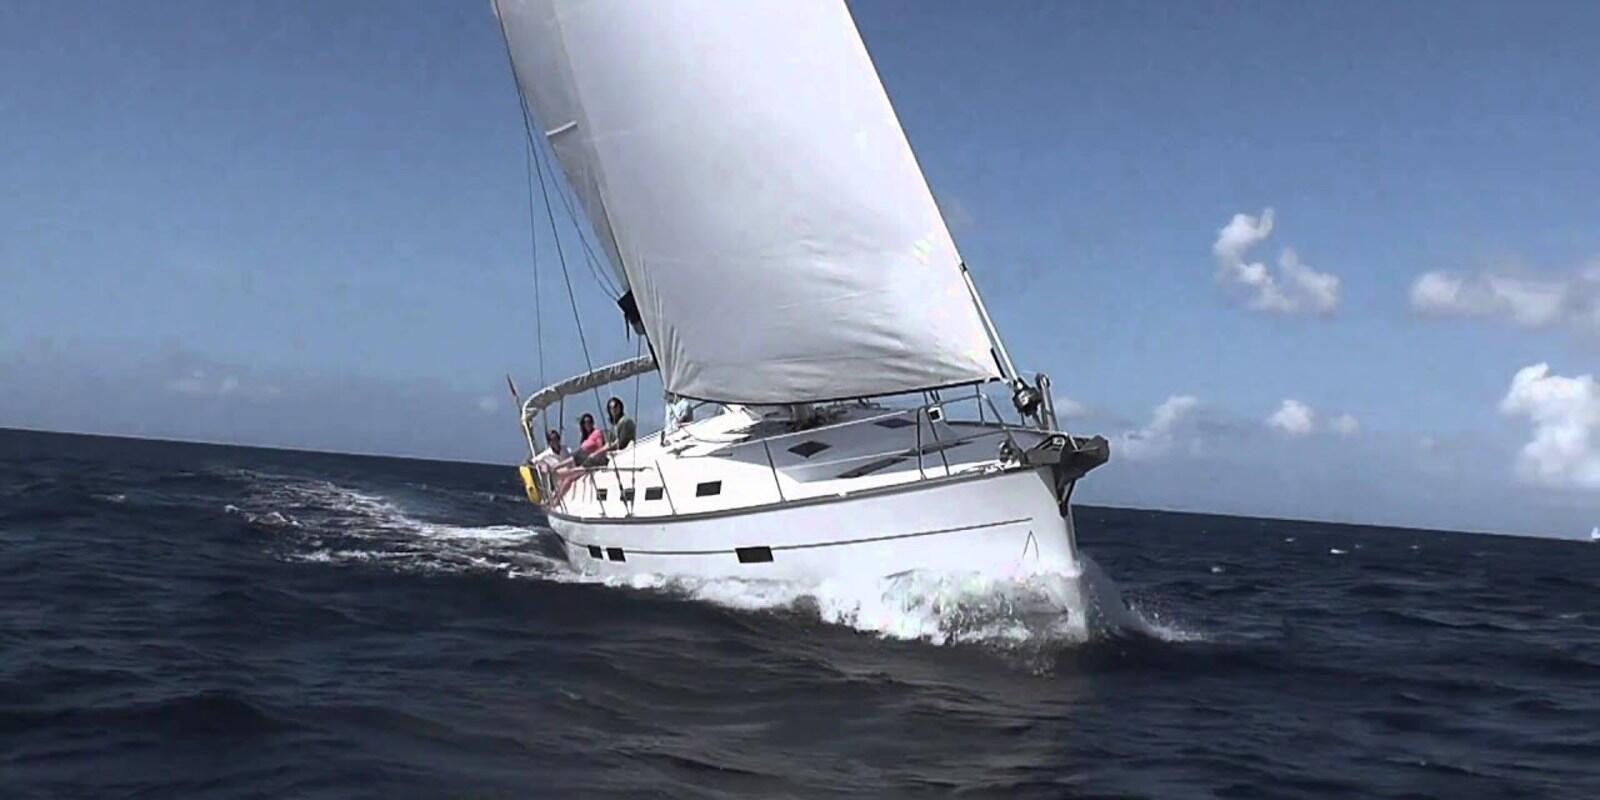 Weekend sailing in the Tuscan Archipelago